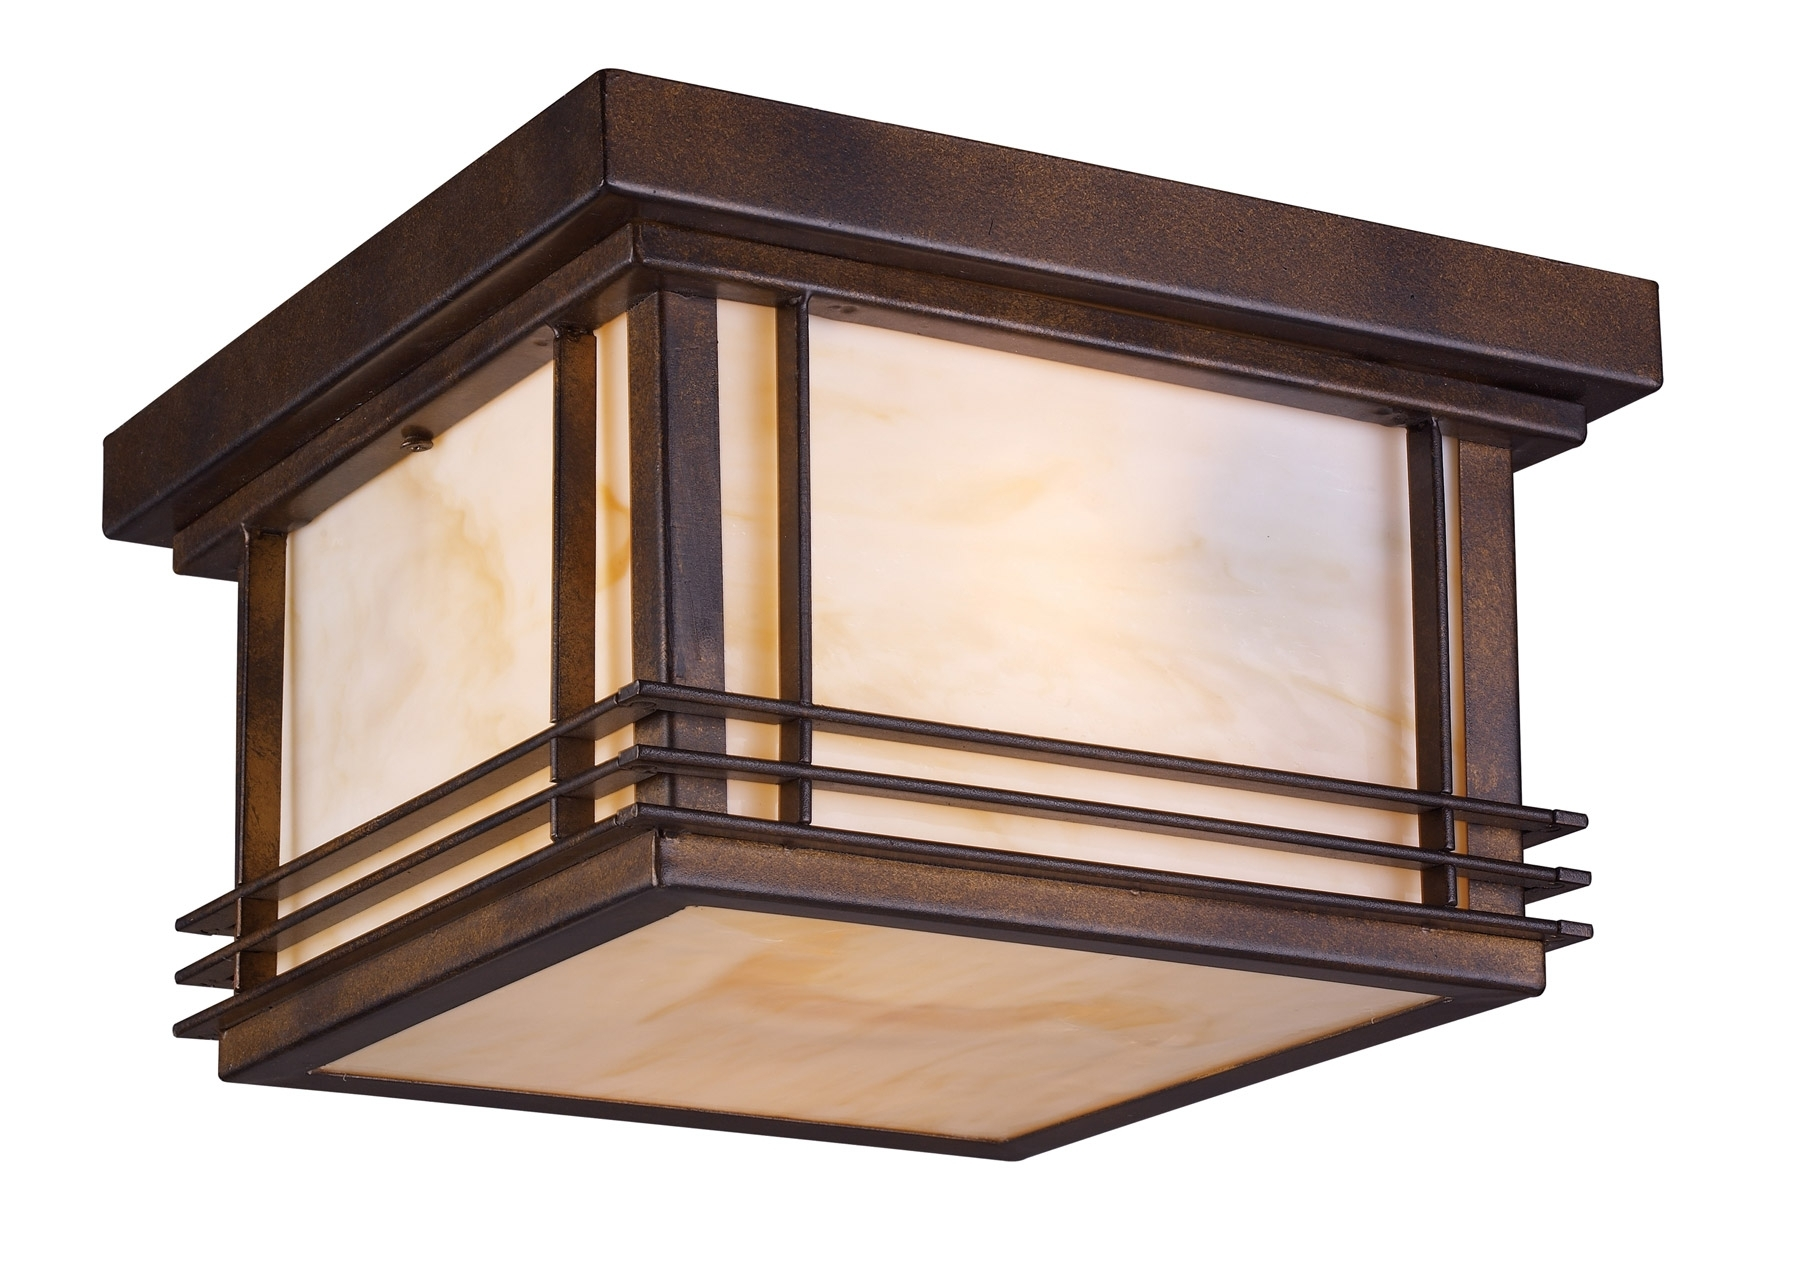 Most Recently Released Commercial Outdoor Ceiling Lighting Fixtures Intended For Light : Ceiling Lights Outdoor (View 11 of 20)